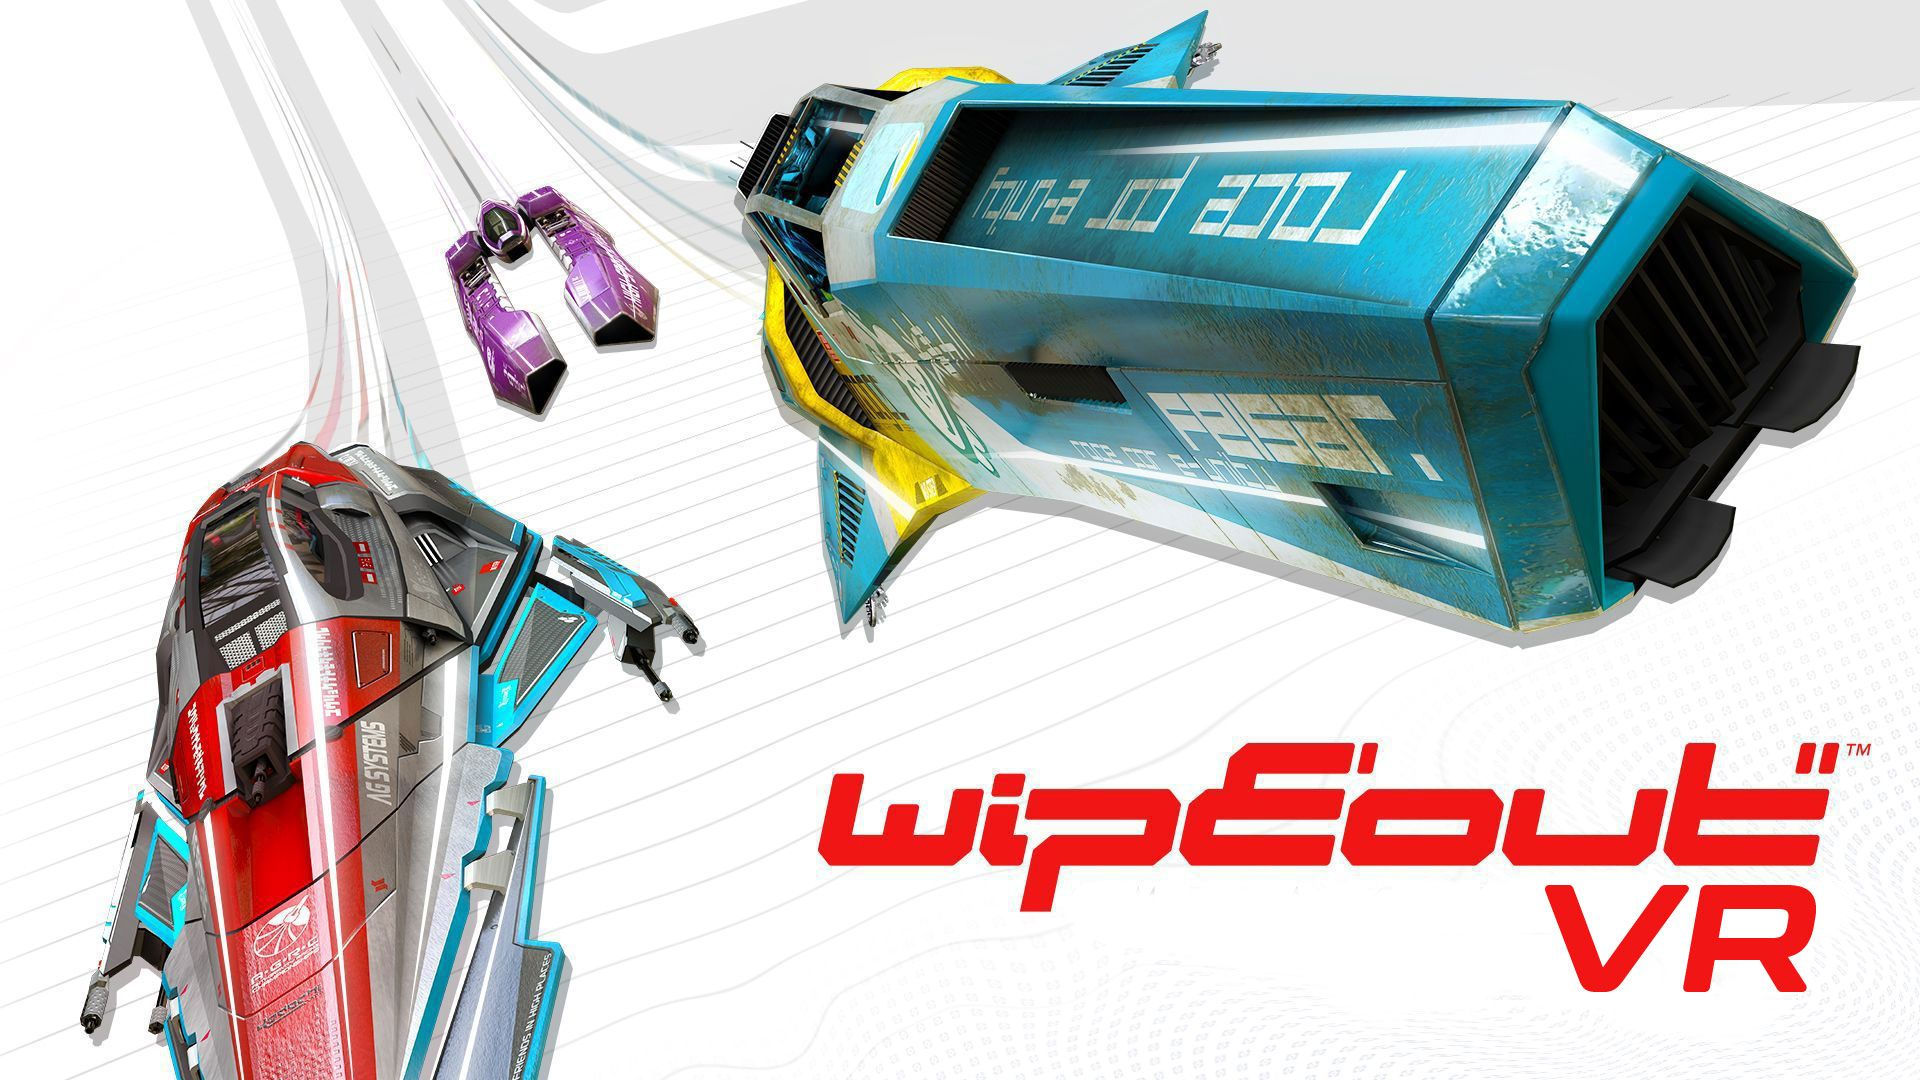 WipEout Omega Collection VR Review/Impression Thread | ResetEra Beta